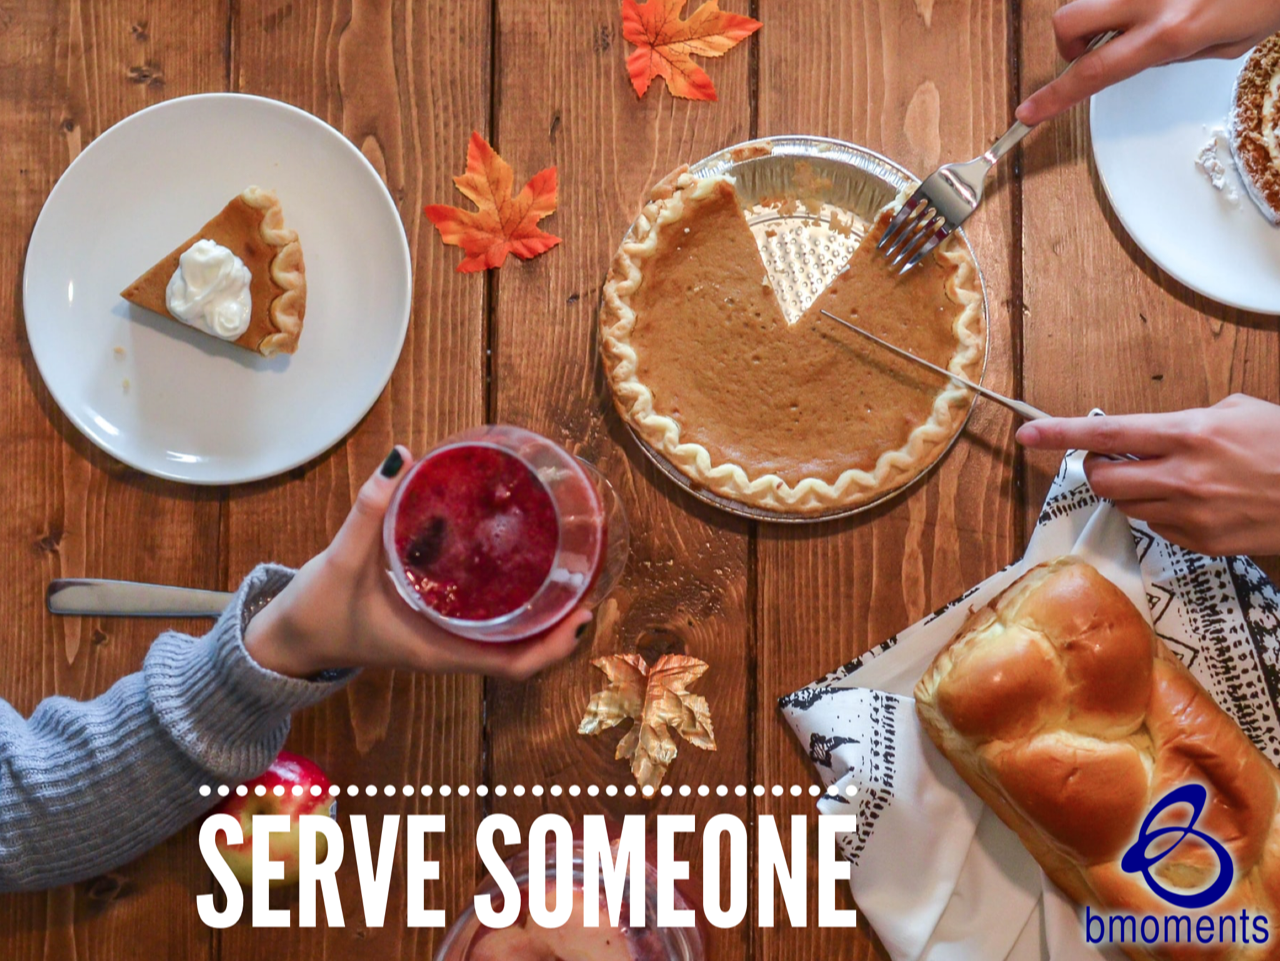 This Thanksgiving, Go Serve Someone